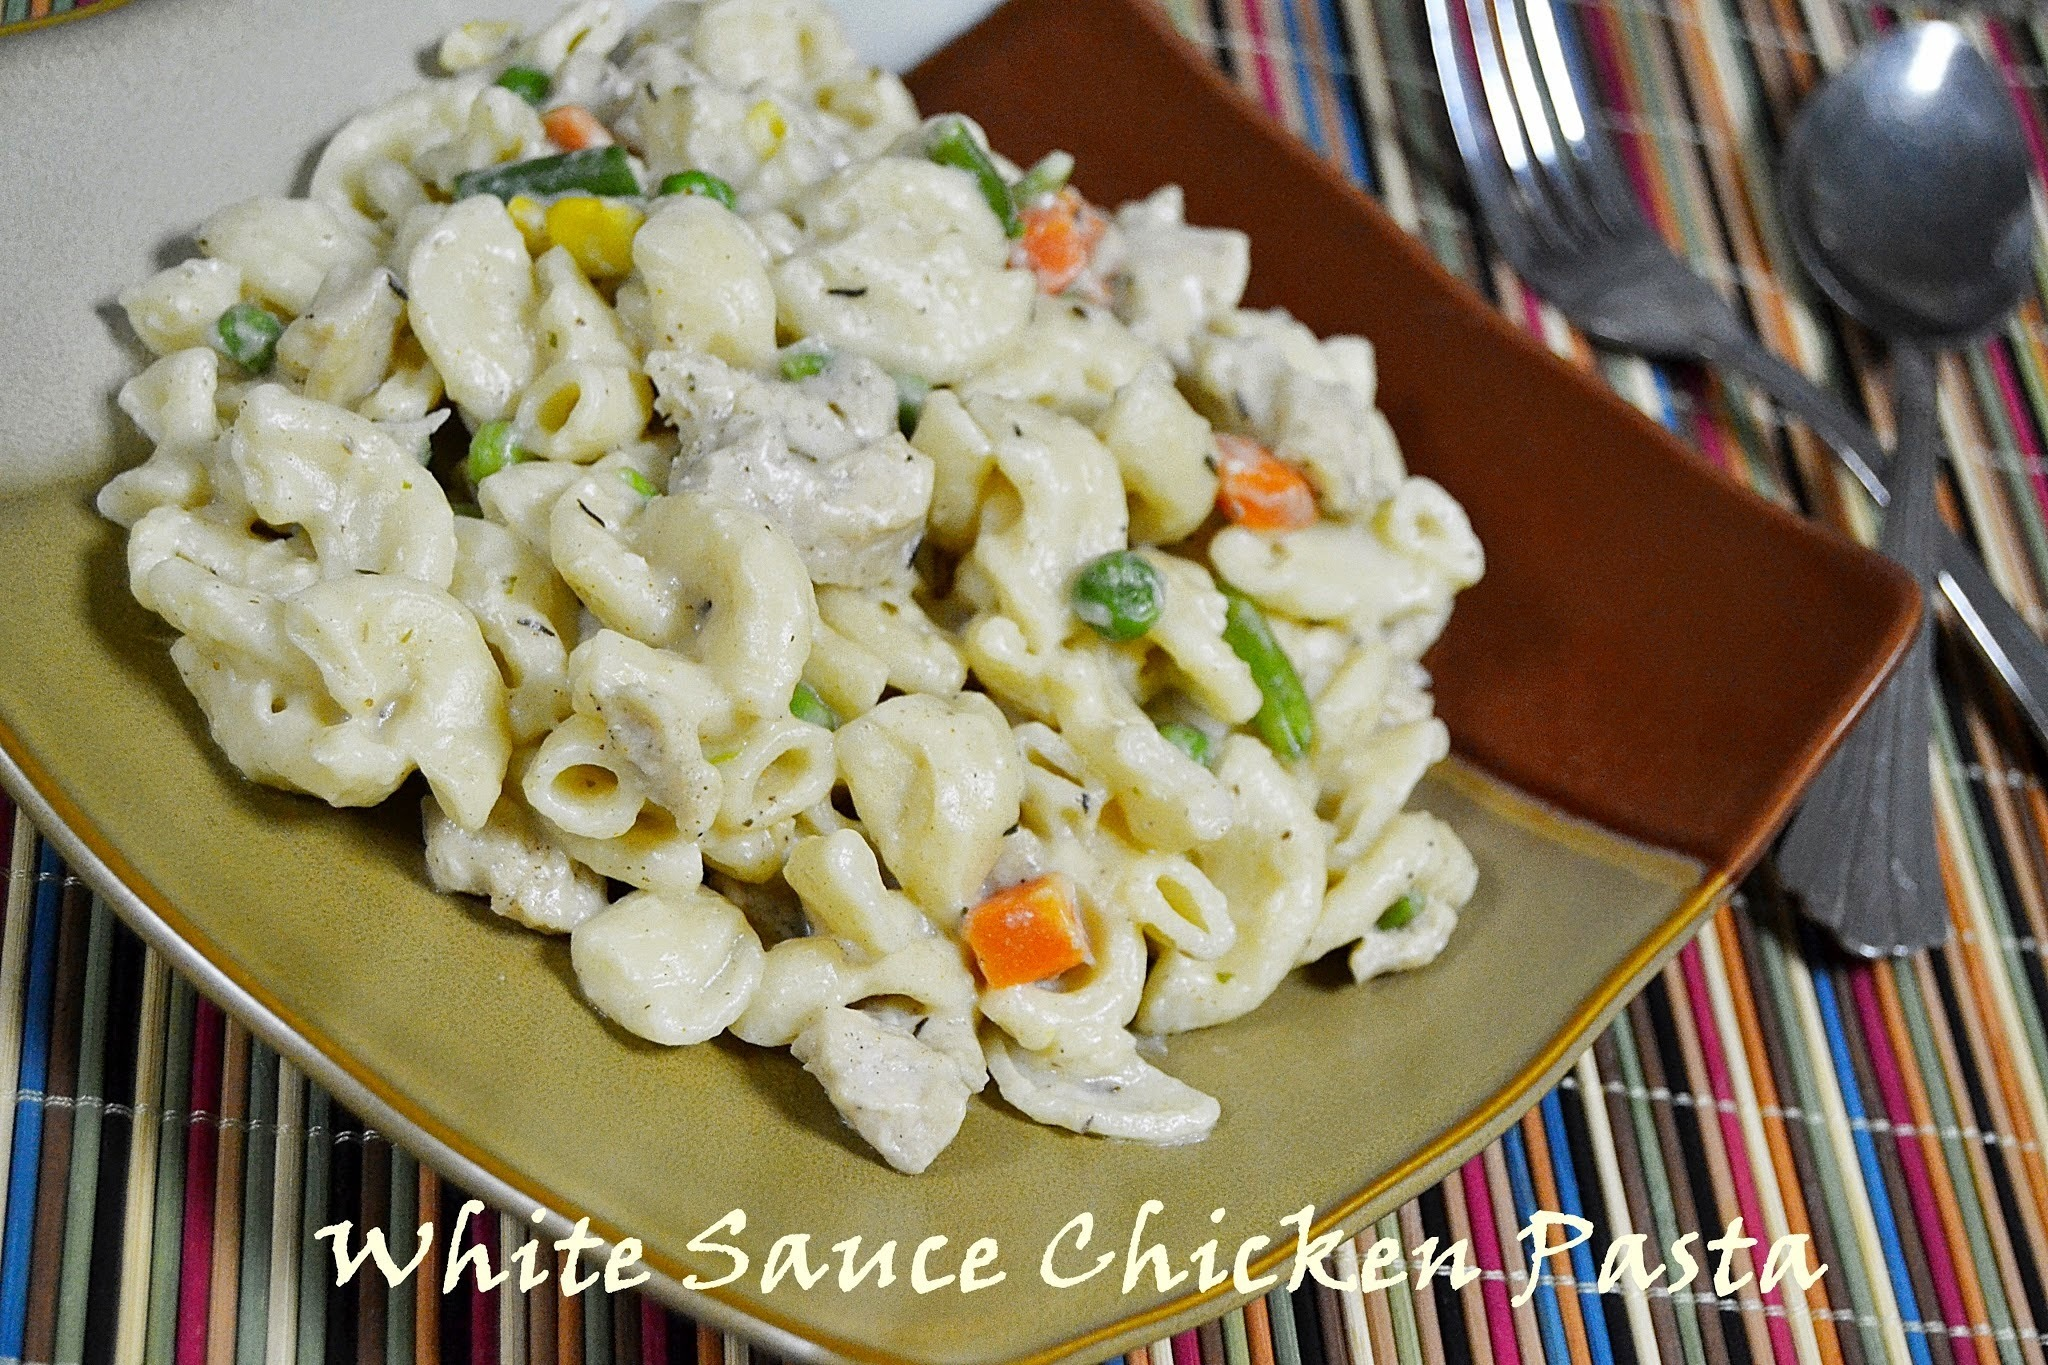 Chicken Pasta in White Sauce